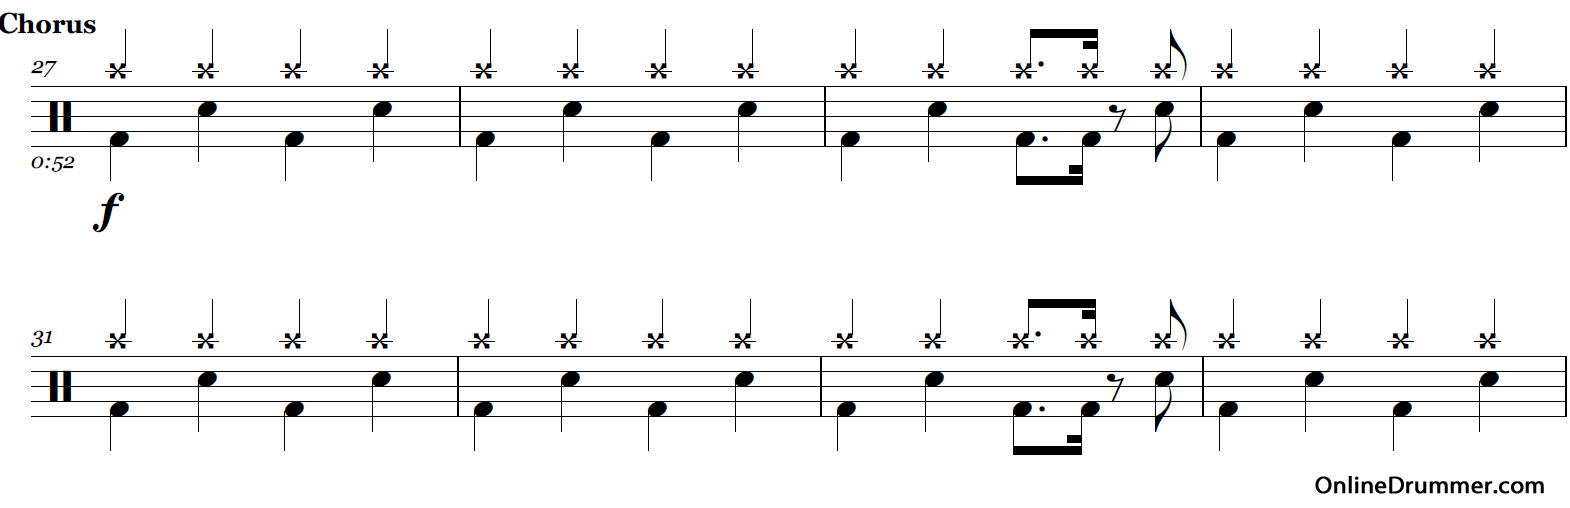 Seven Nation Army - White Stripes u2013 Drum Sheet Music : OnlineDrummer.com